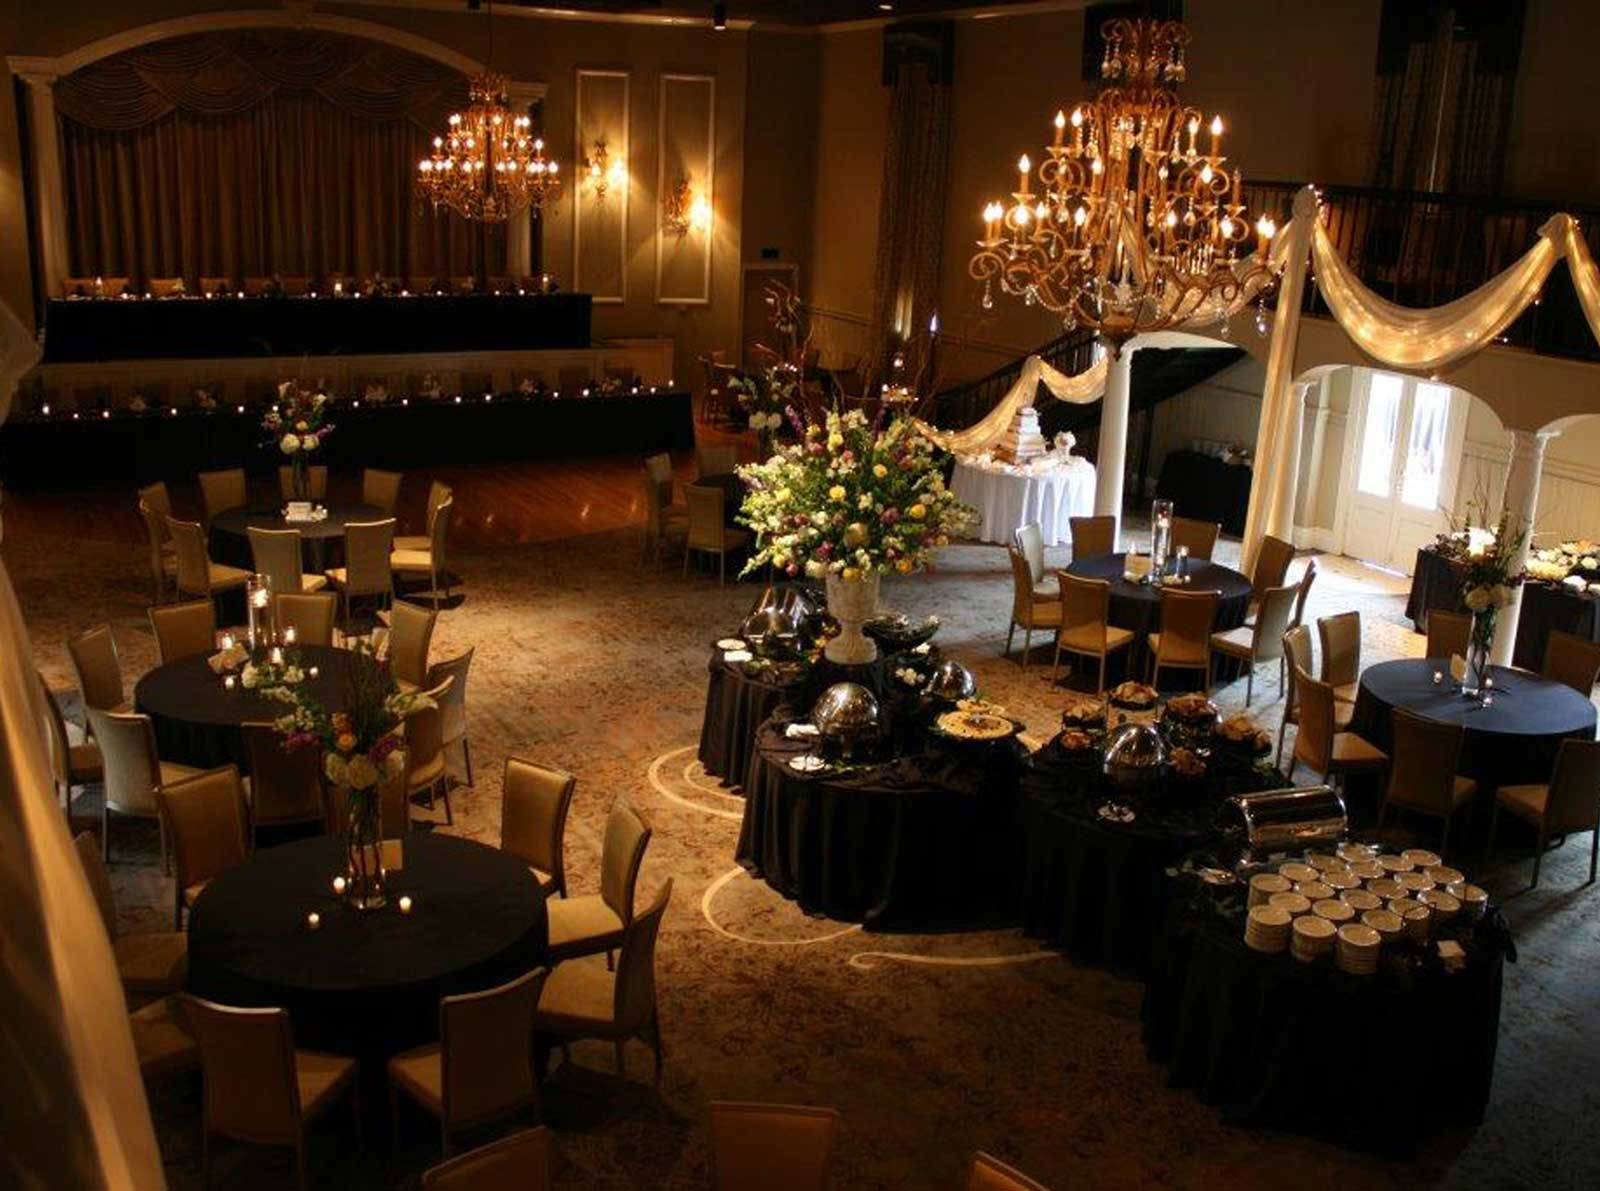 Named Best Place For A Wedding Reception By Mississippi Magazine 2009